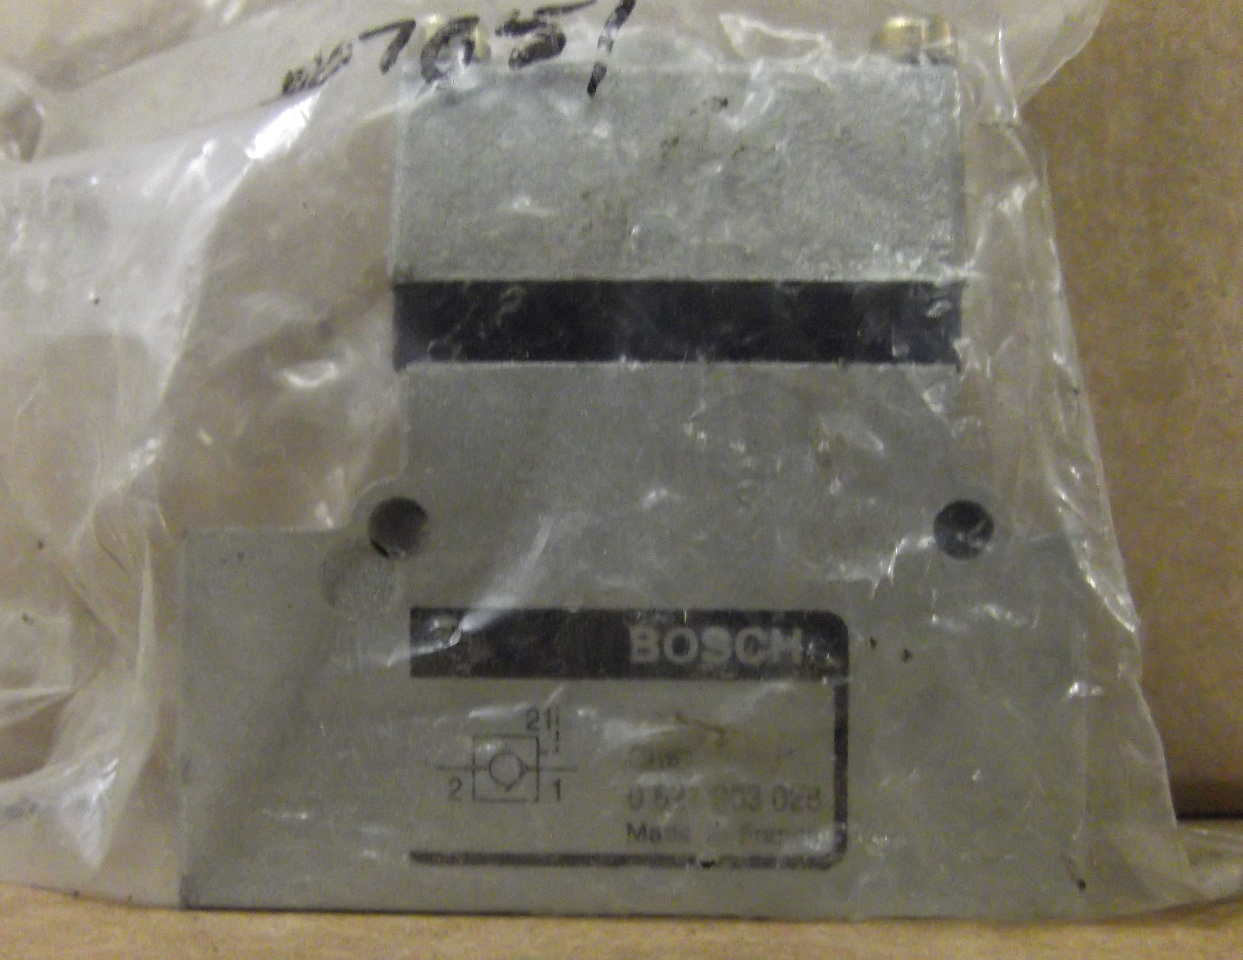 BOSCH REXROTH PNEUMATICS 0821003028 CHECK VALVE G 1/2 PILOT OPERATED